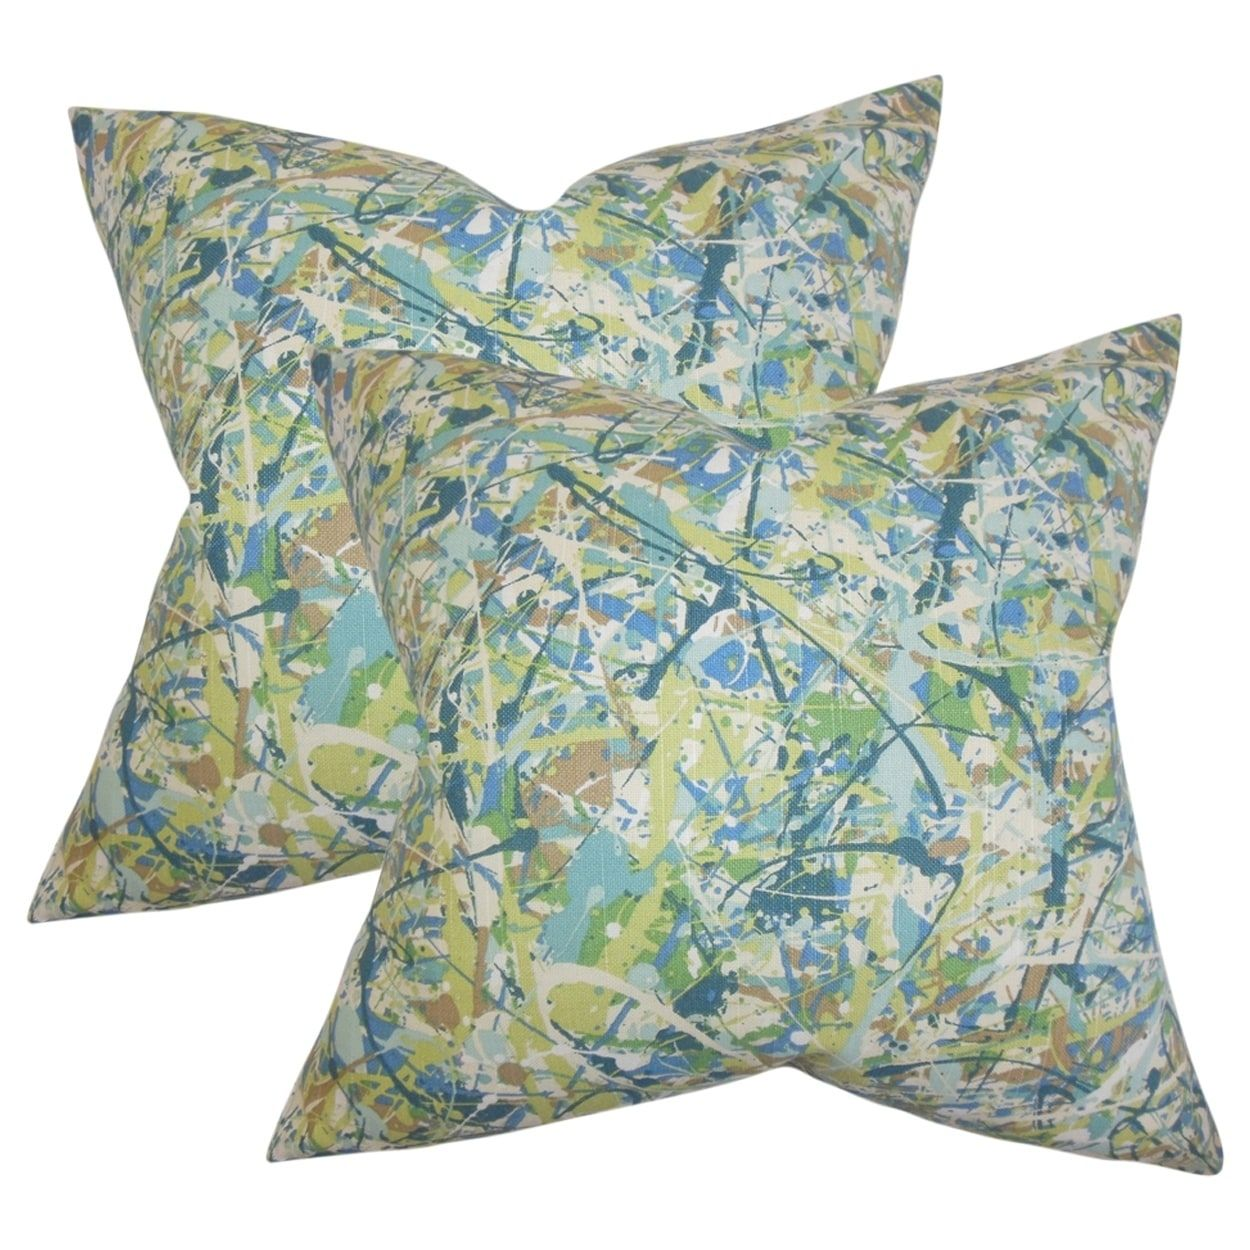 Set of 2 Geneen Geometric Throw Pillows in Green, Size 18 x 18 (Cotton, Graphic Print)